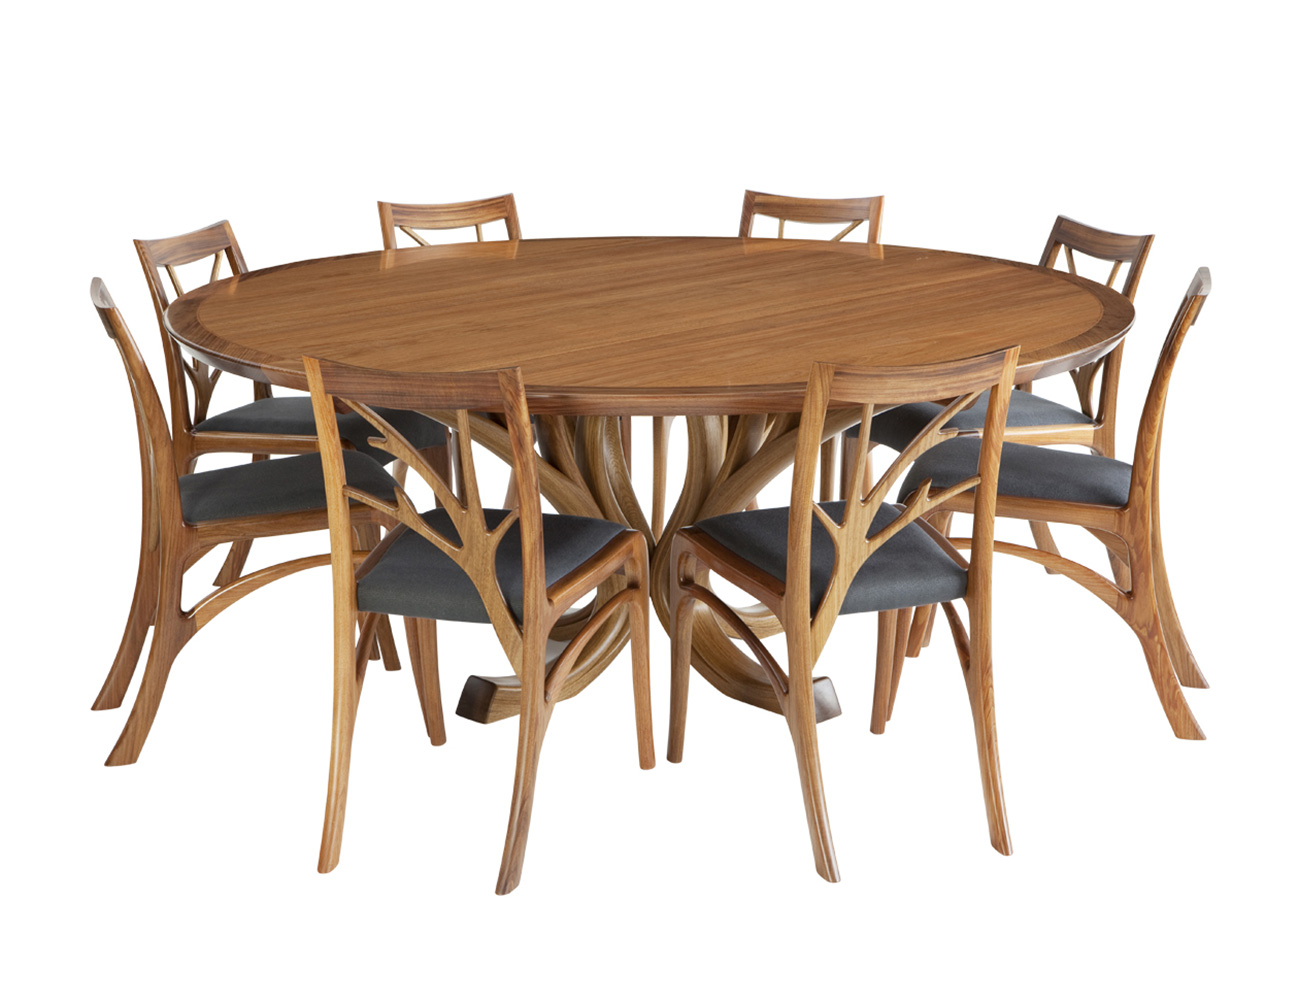 Blackwood Magnolia 8 Seater Round Wooden Dining Table